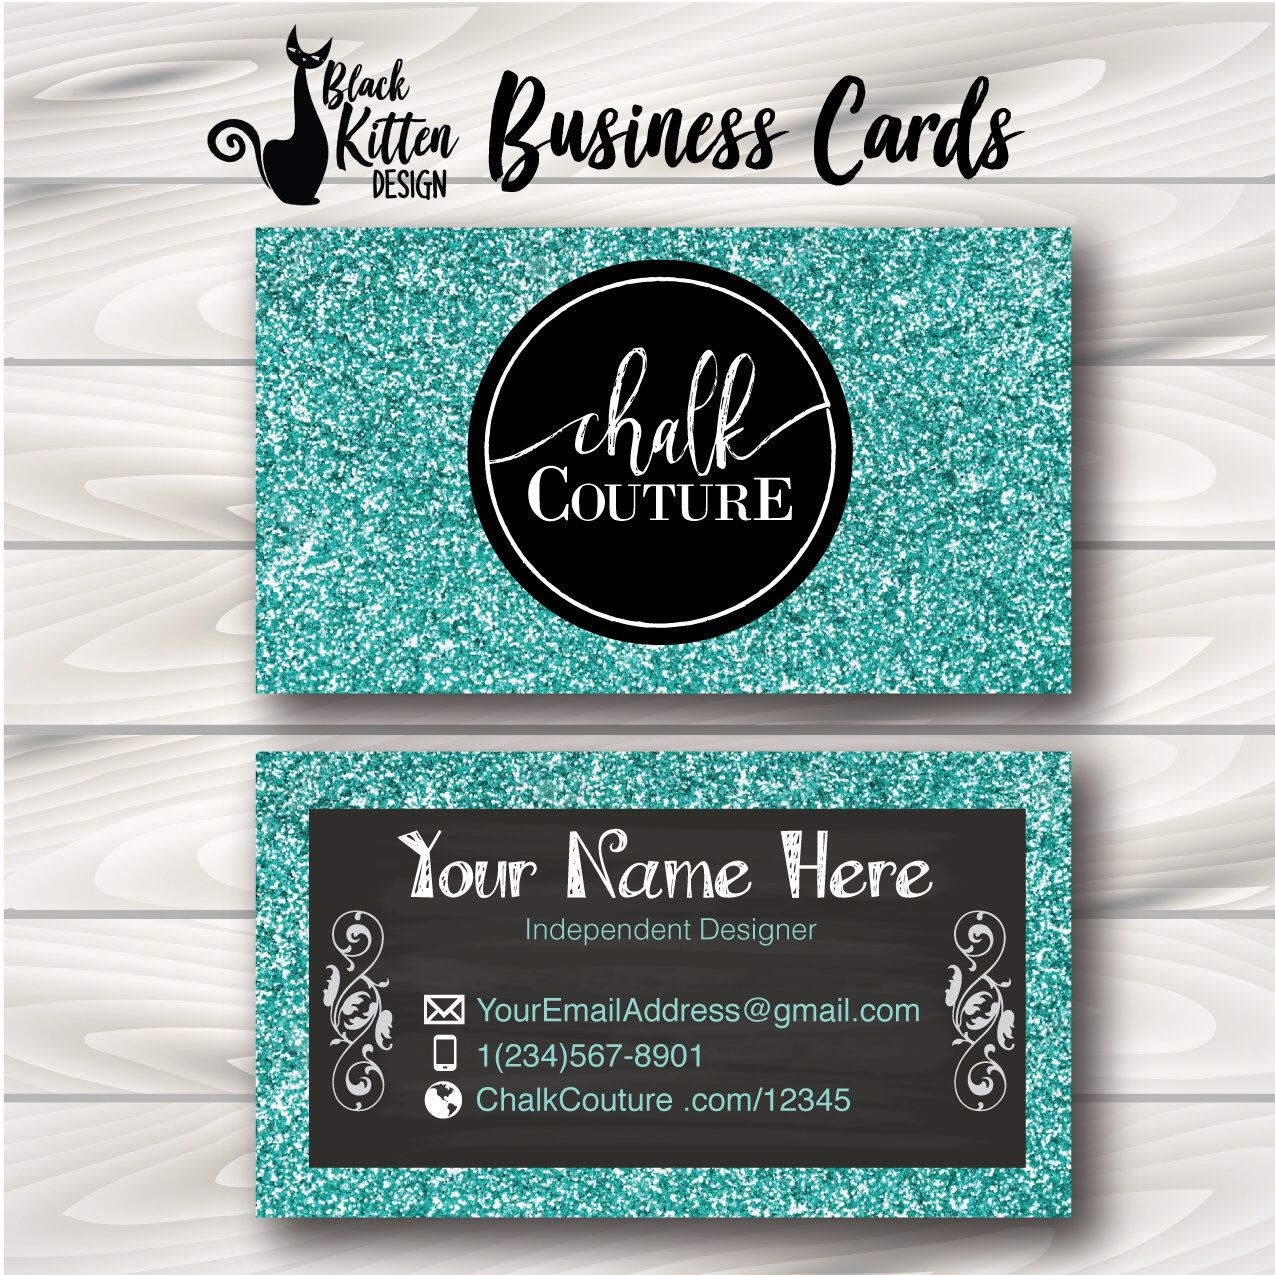 Chalk Couture Business Cards Teal Glitter, Chalk Couture